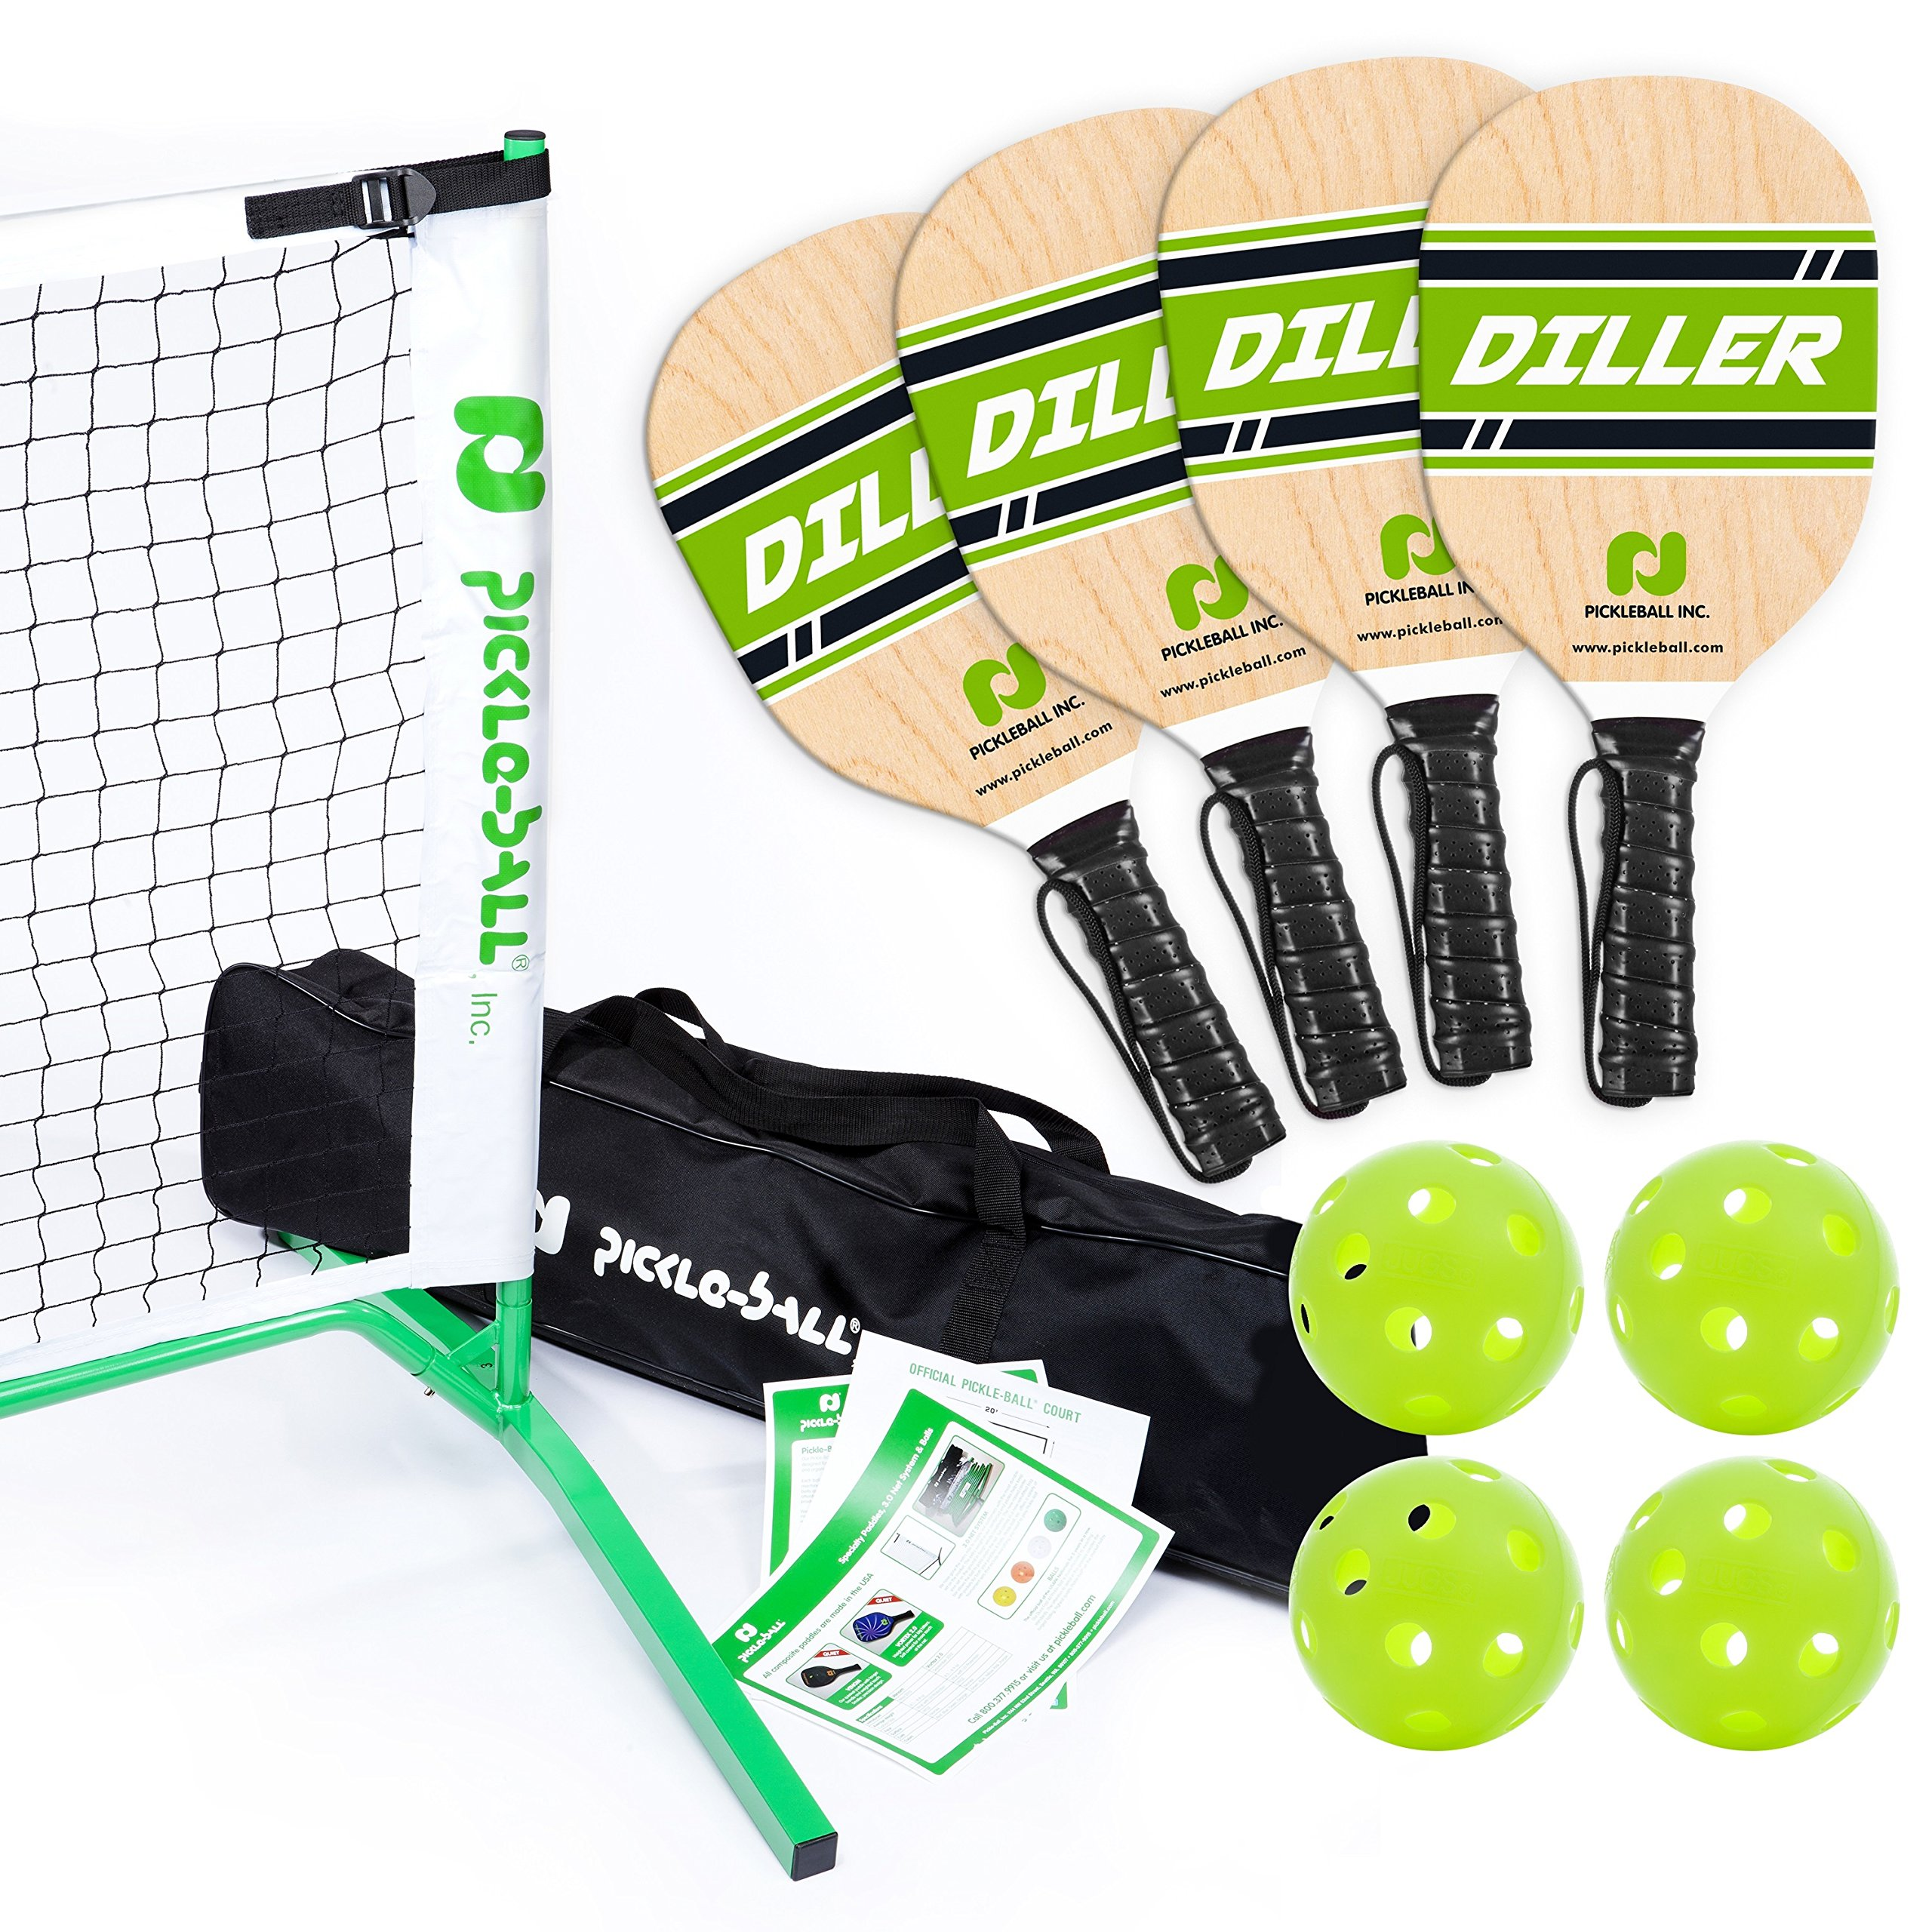 Pickle-Ball, Inc. Pickleball Diller Tournament Net Set (Set Includes Metal Frame + Net + 4 paddles + 4 balls + Rules Sheet in Carry Bag) by Pickle-Ball (Image #1)